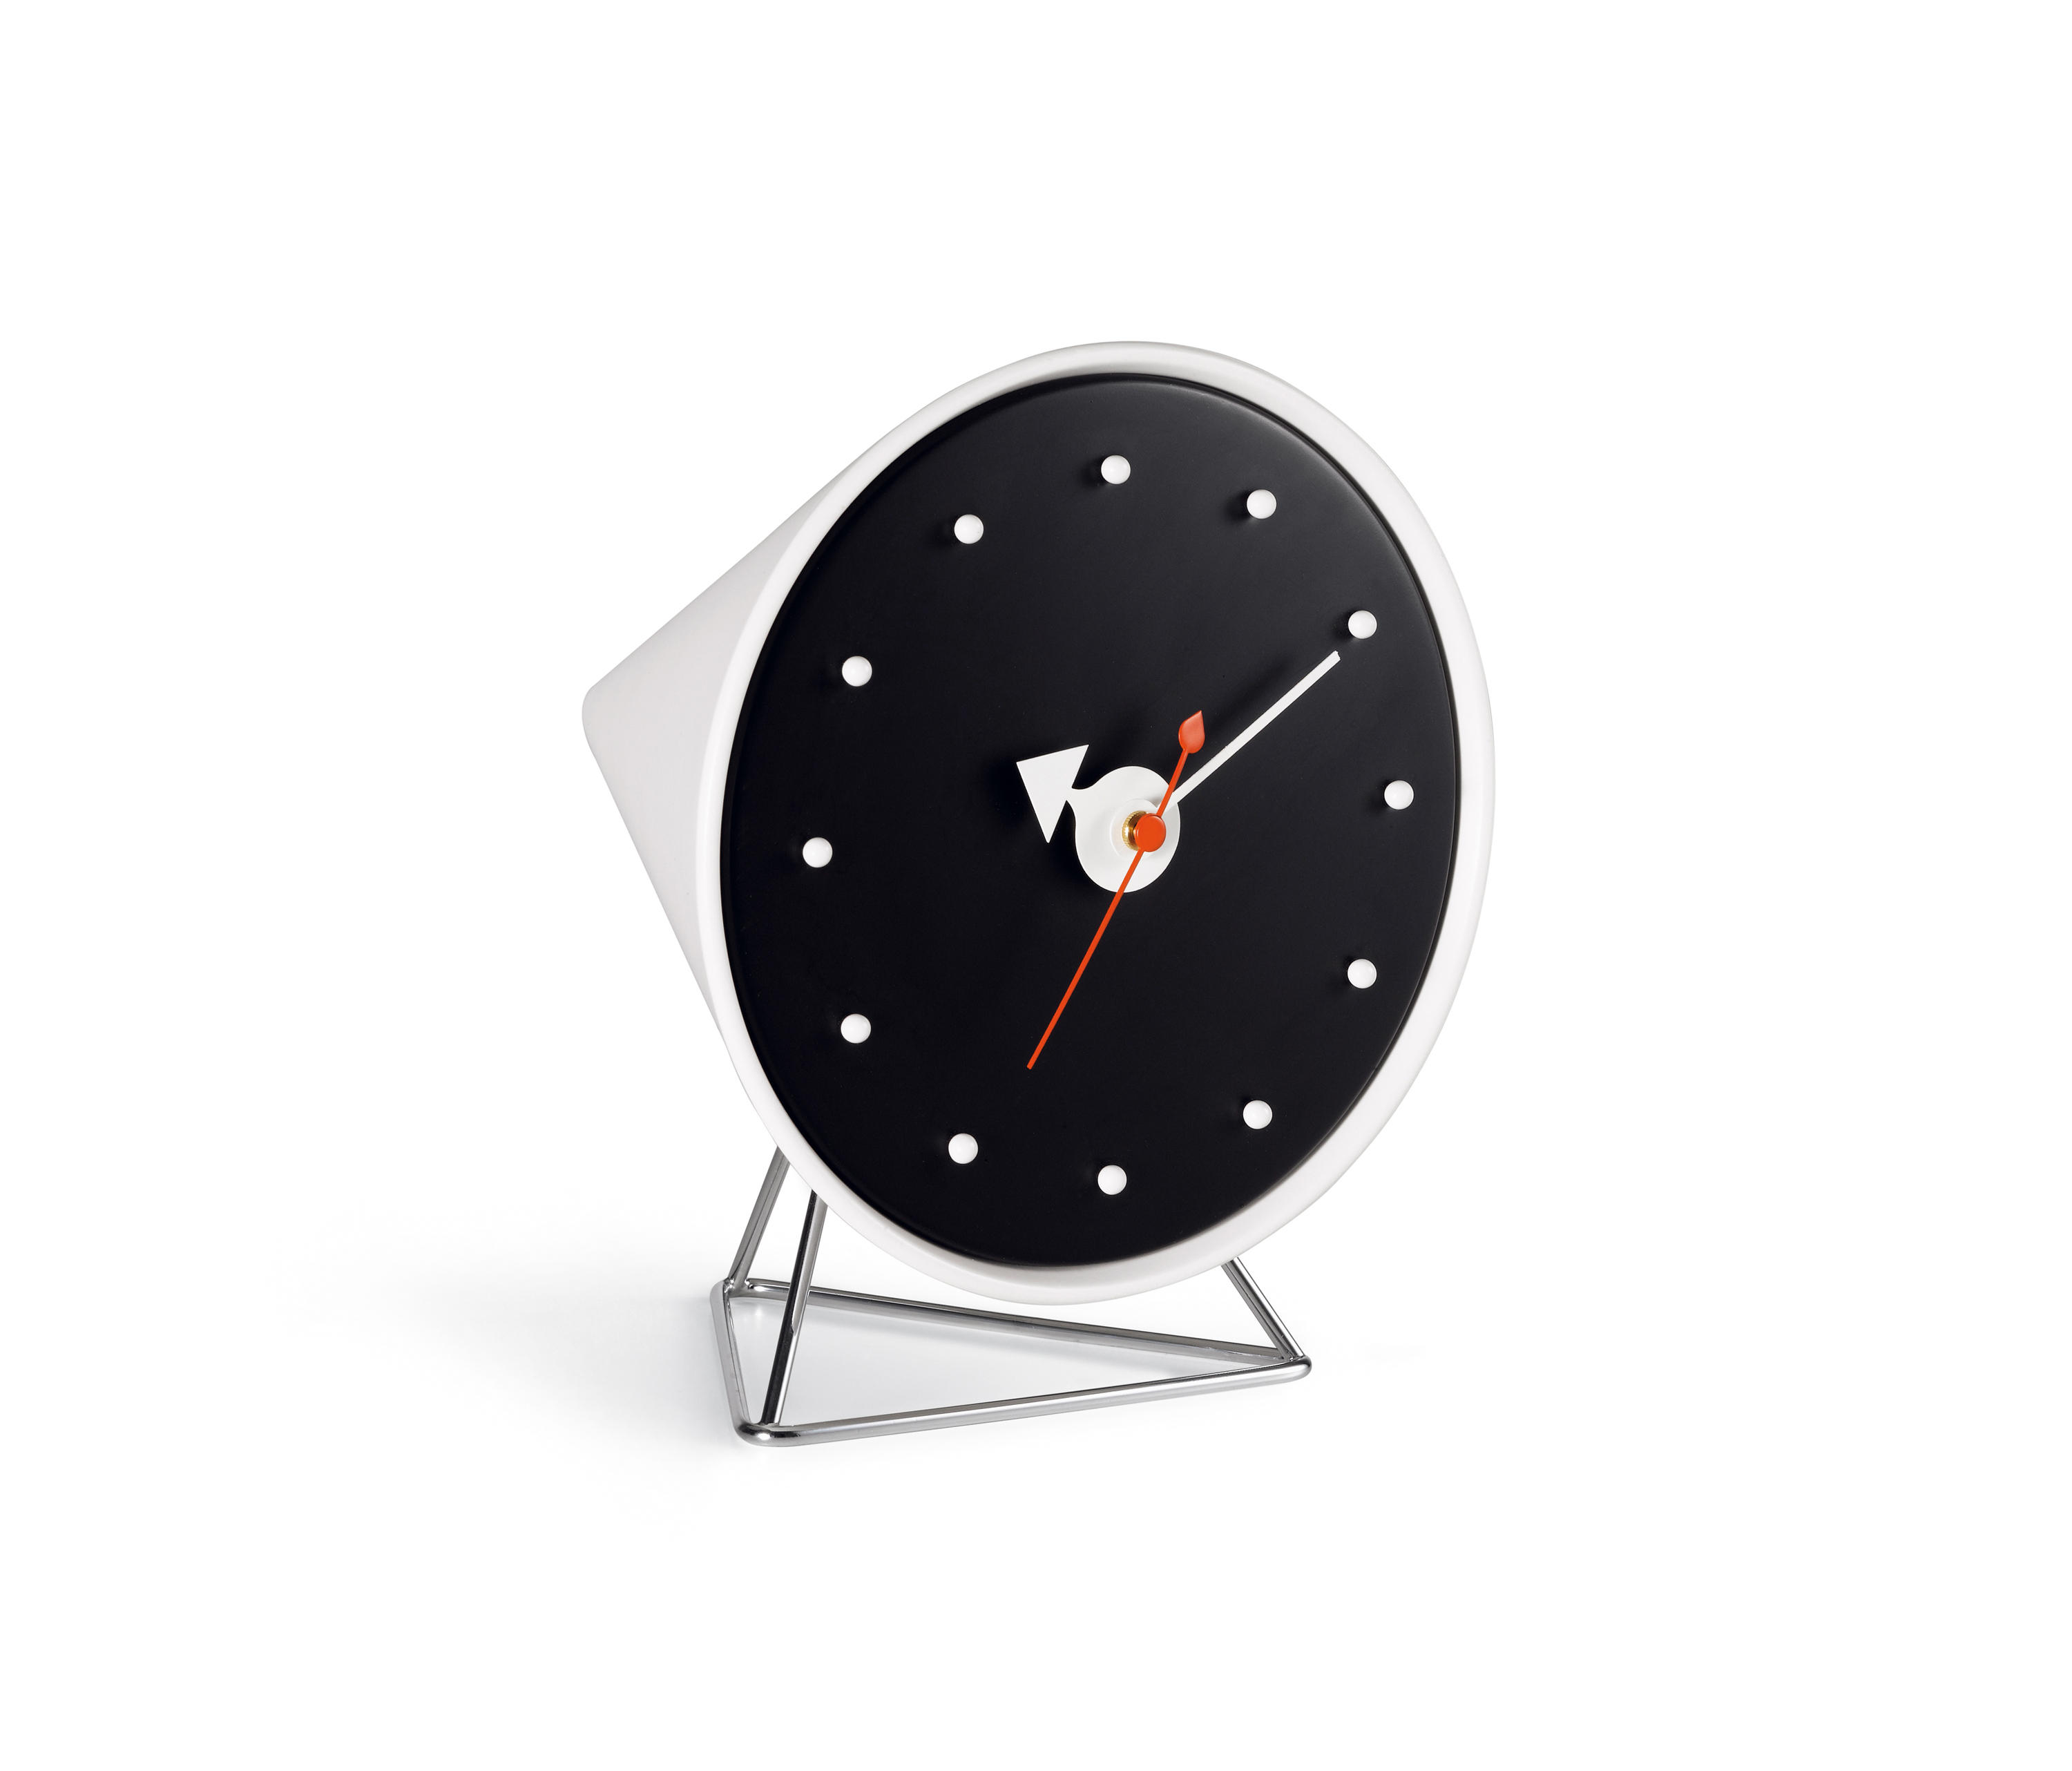 Vitra Clock Desk Clock - Clocks From Vitra | Architonic